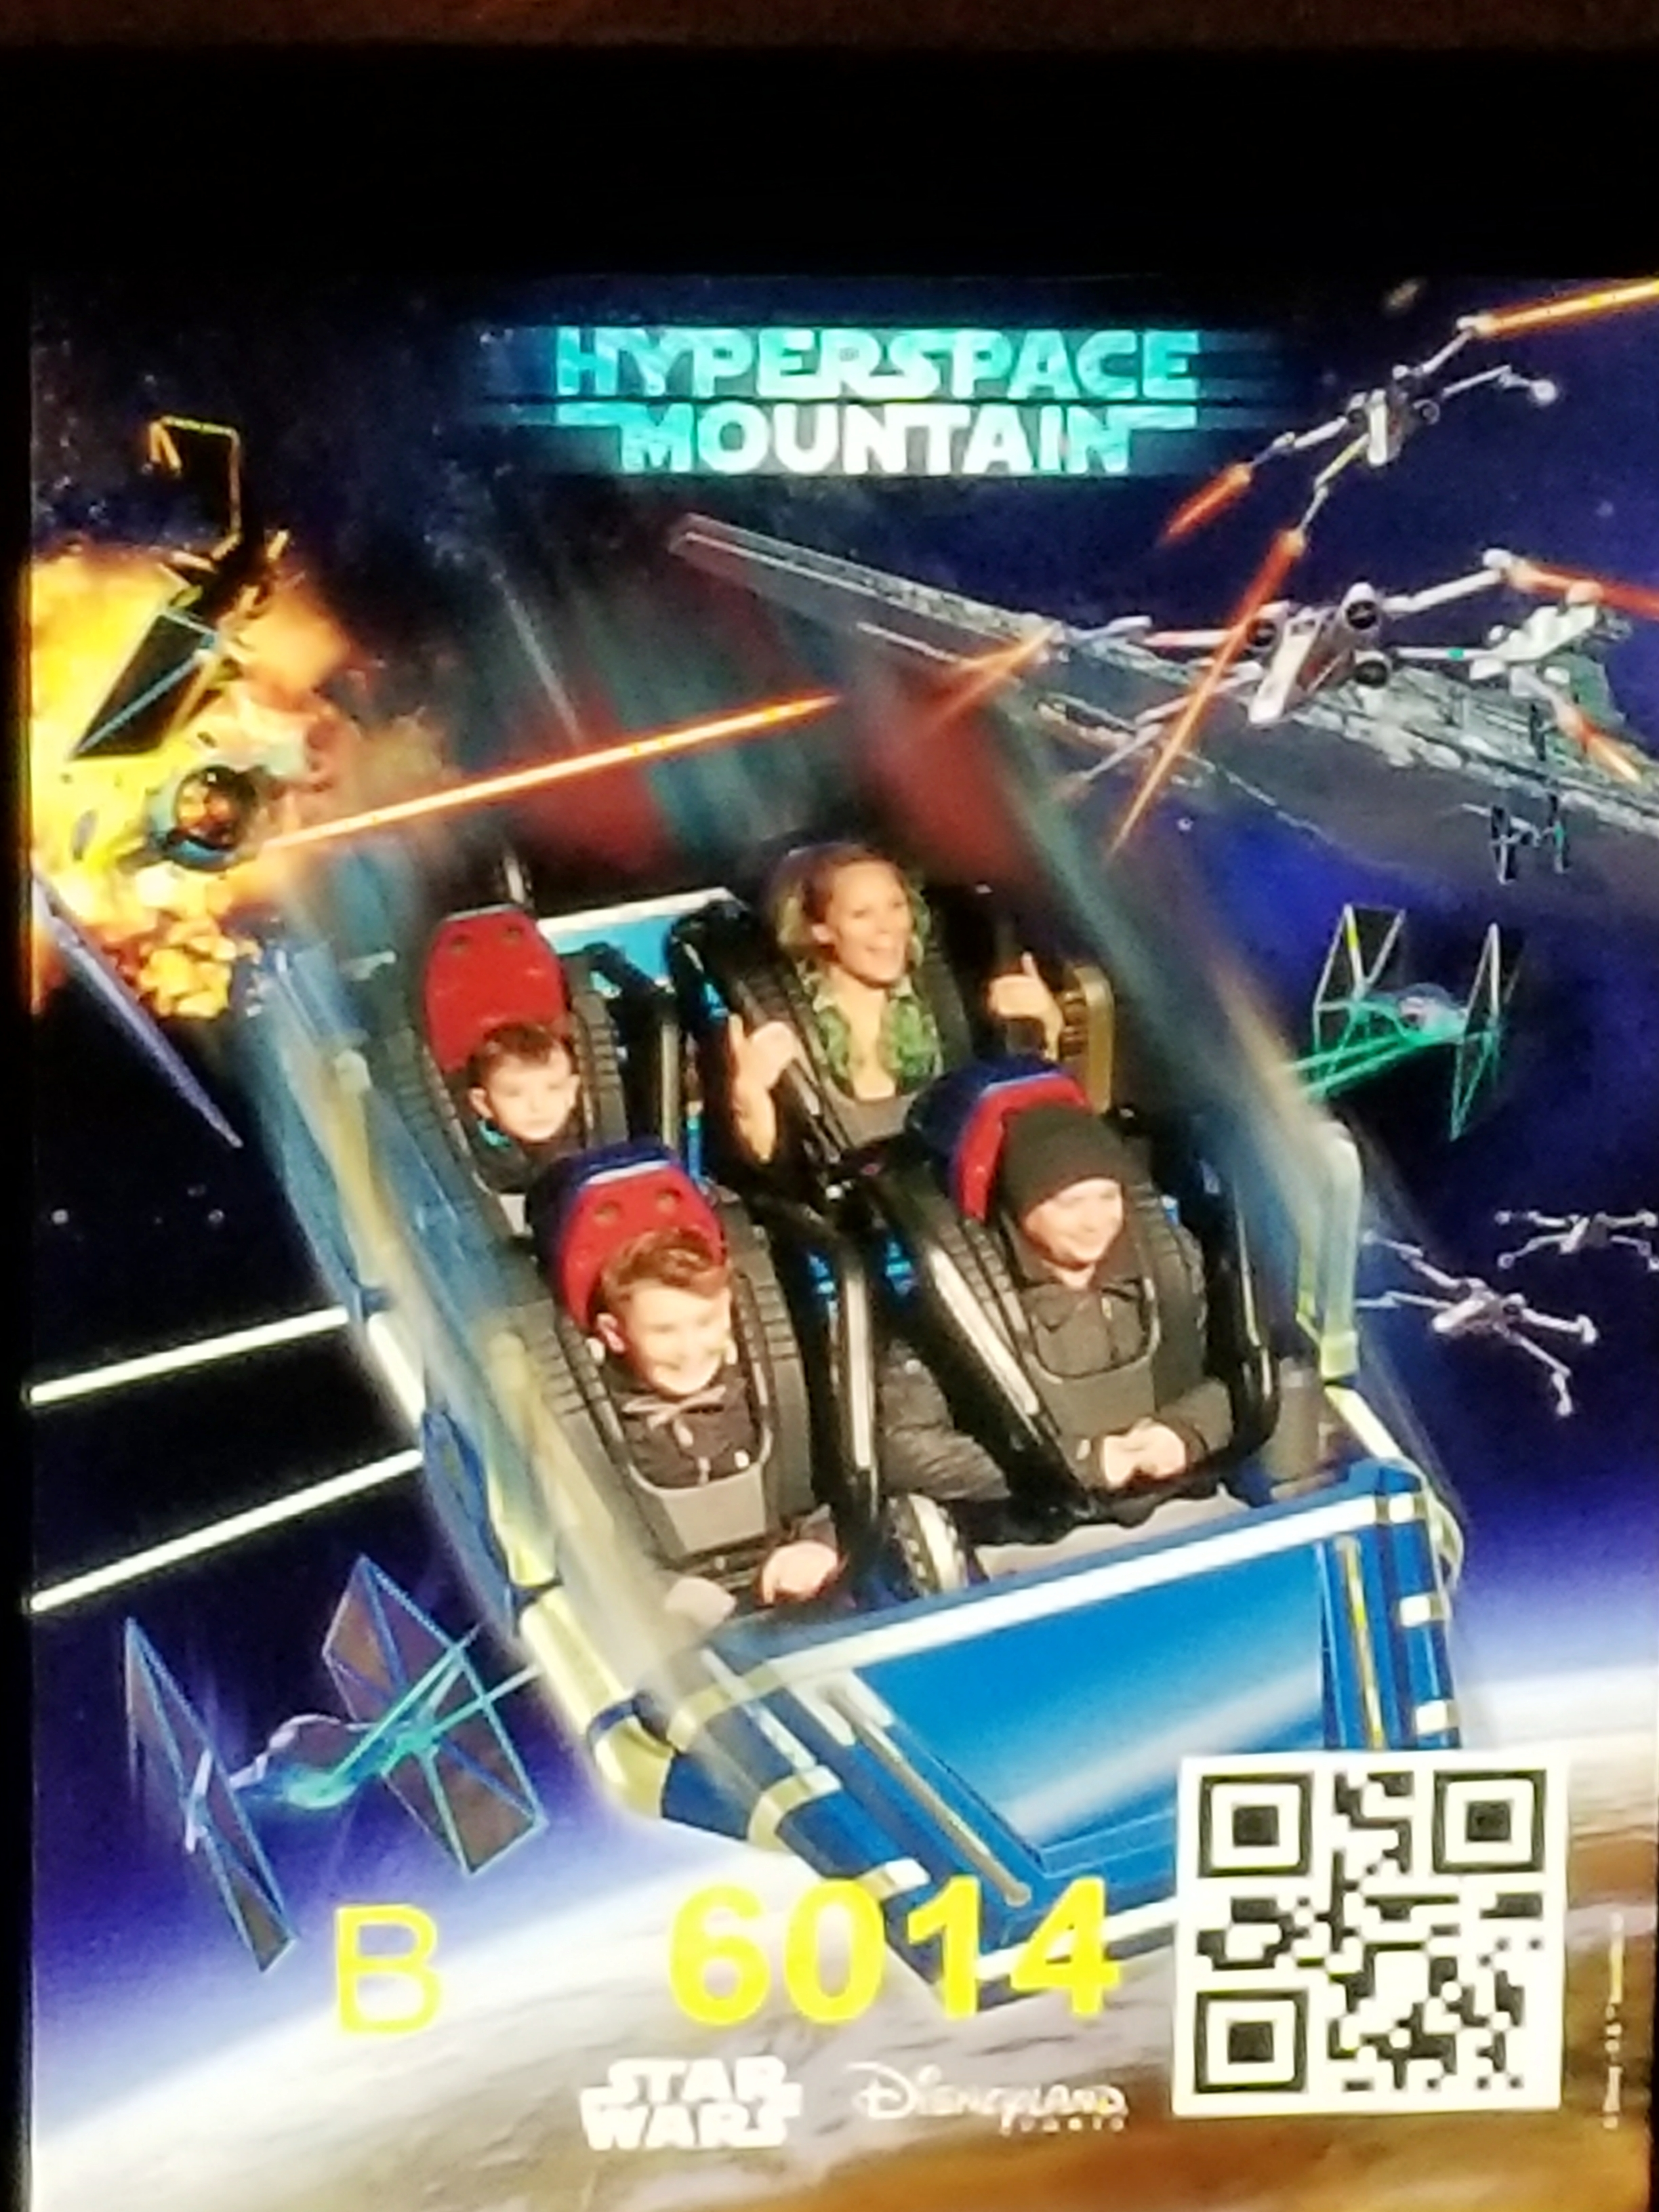 Lizzie Does Disneyland Paris - Hyperspace Mountain